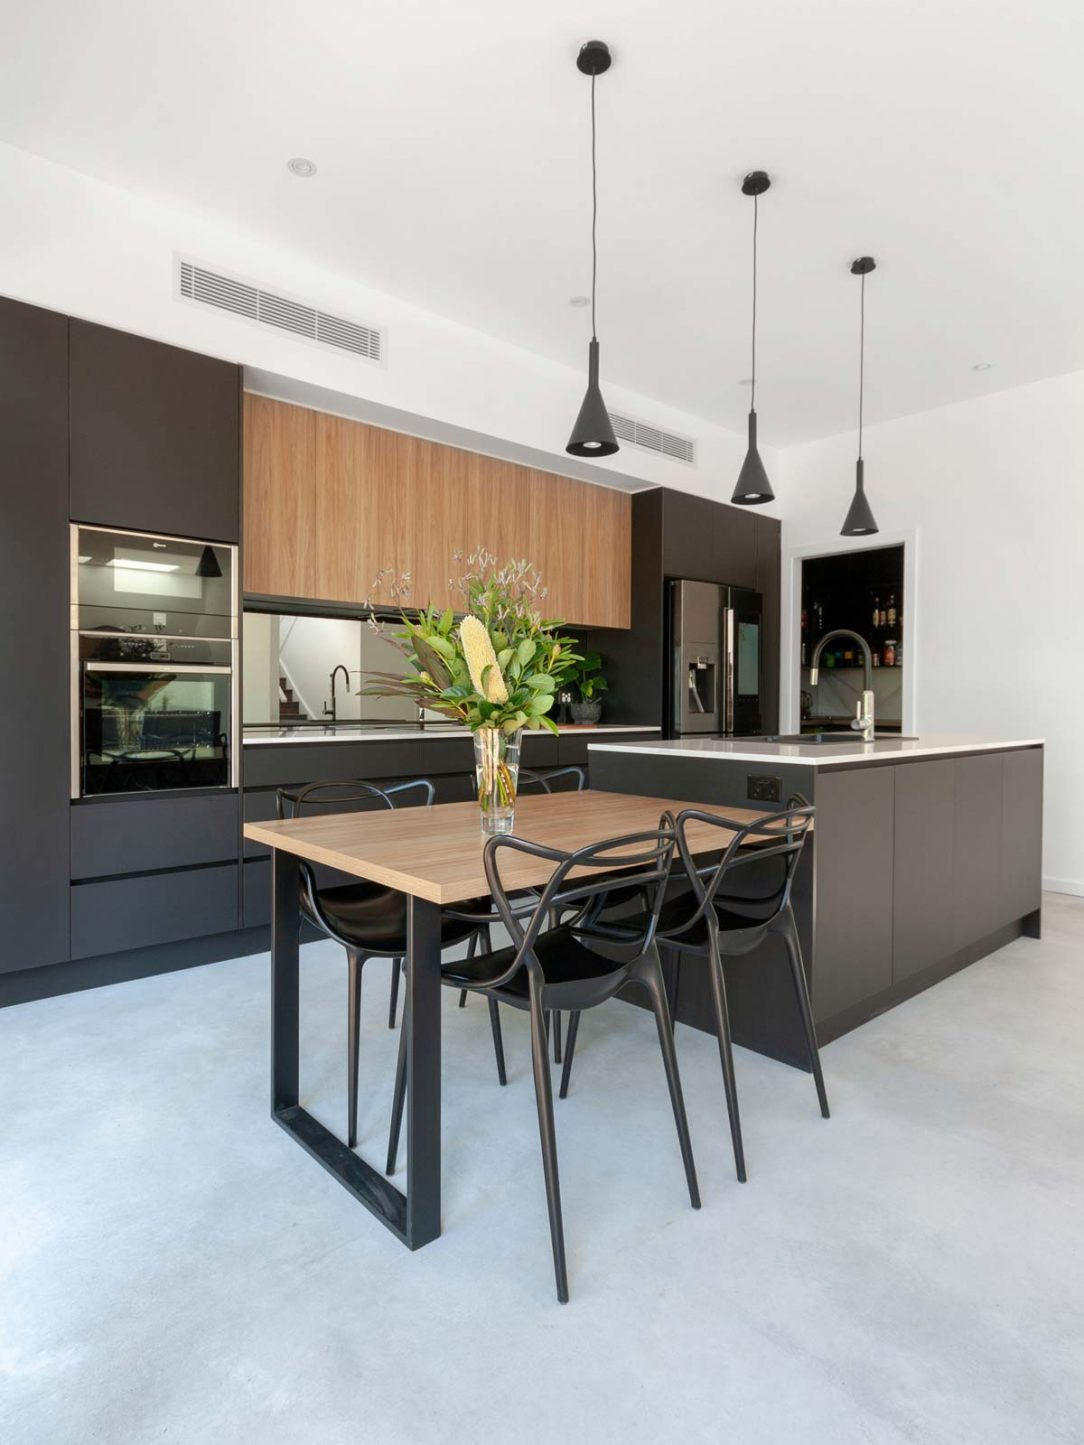 Black & timber kitchen design featuring Matt Blatt chairs, Samsung fridge, Silestone benchtop & Abey sink. Designed by Premier Kitchens Australia.